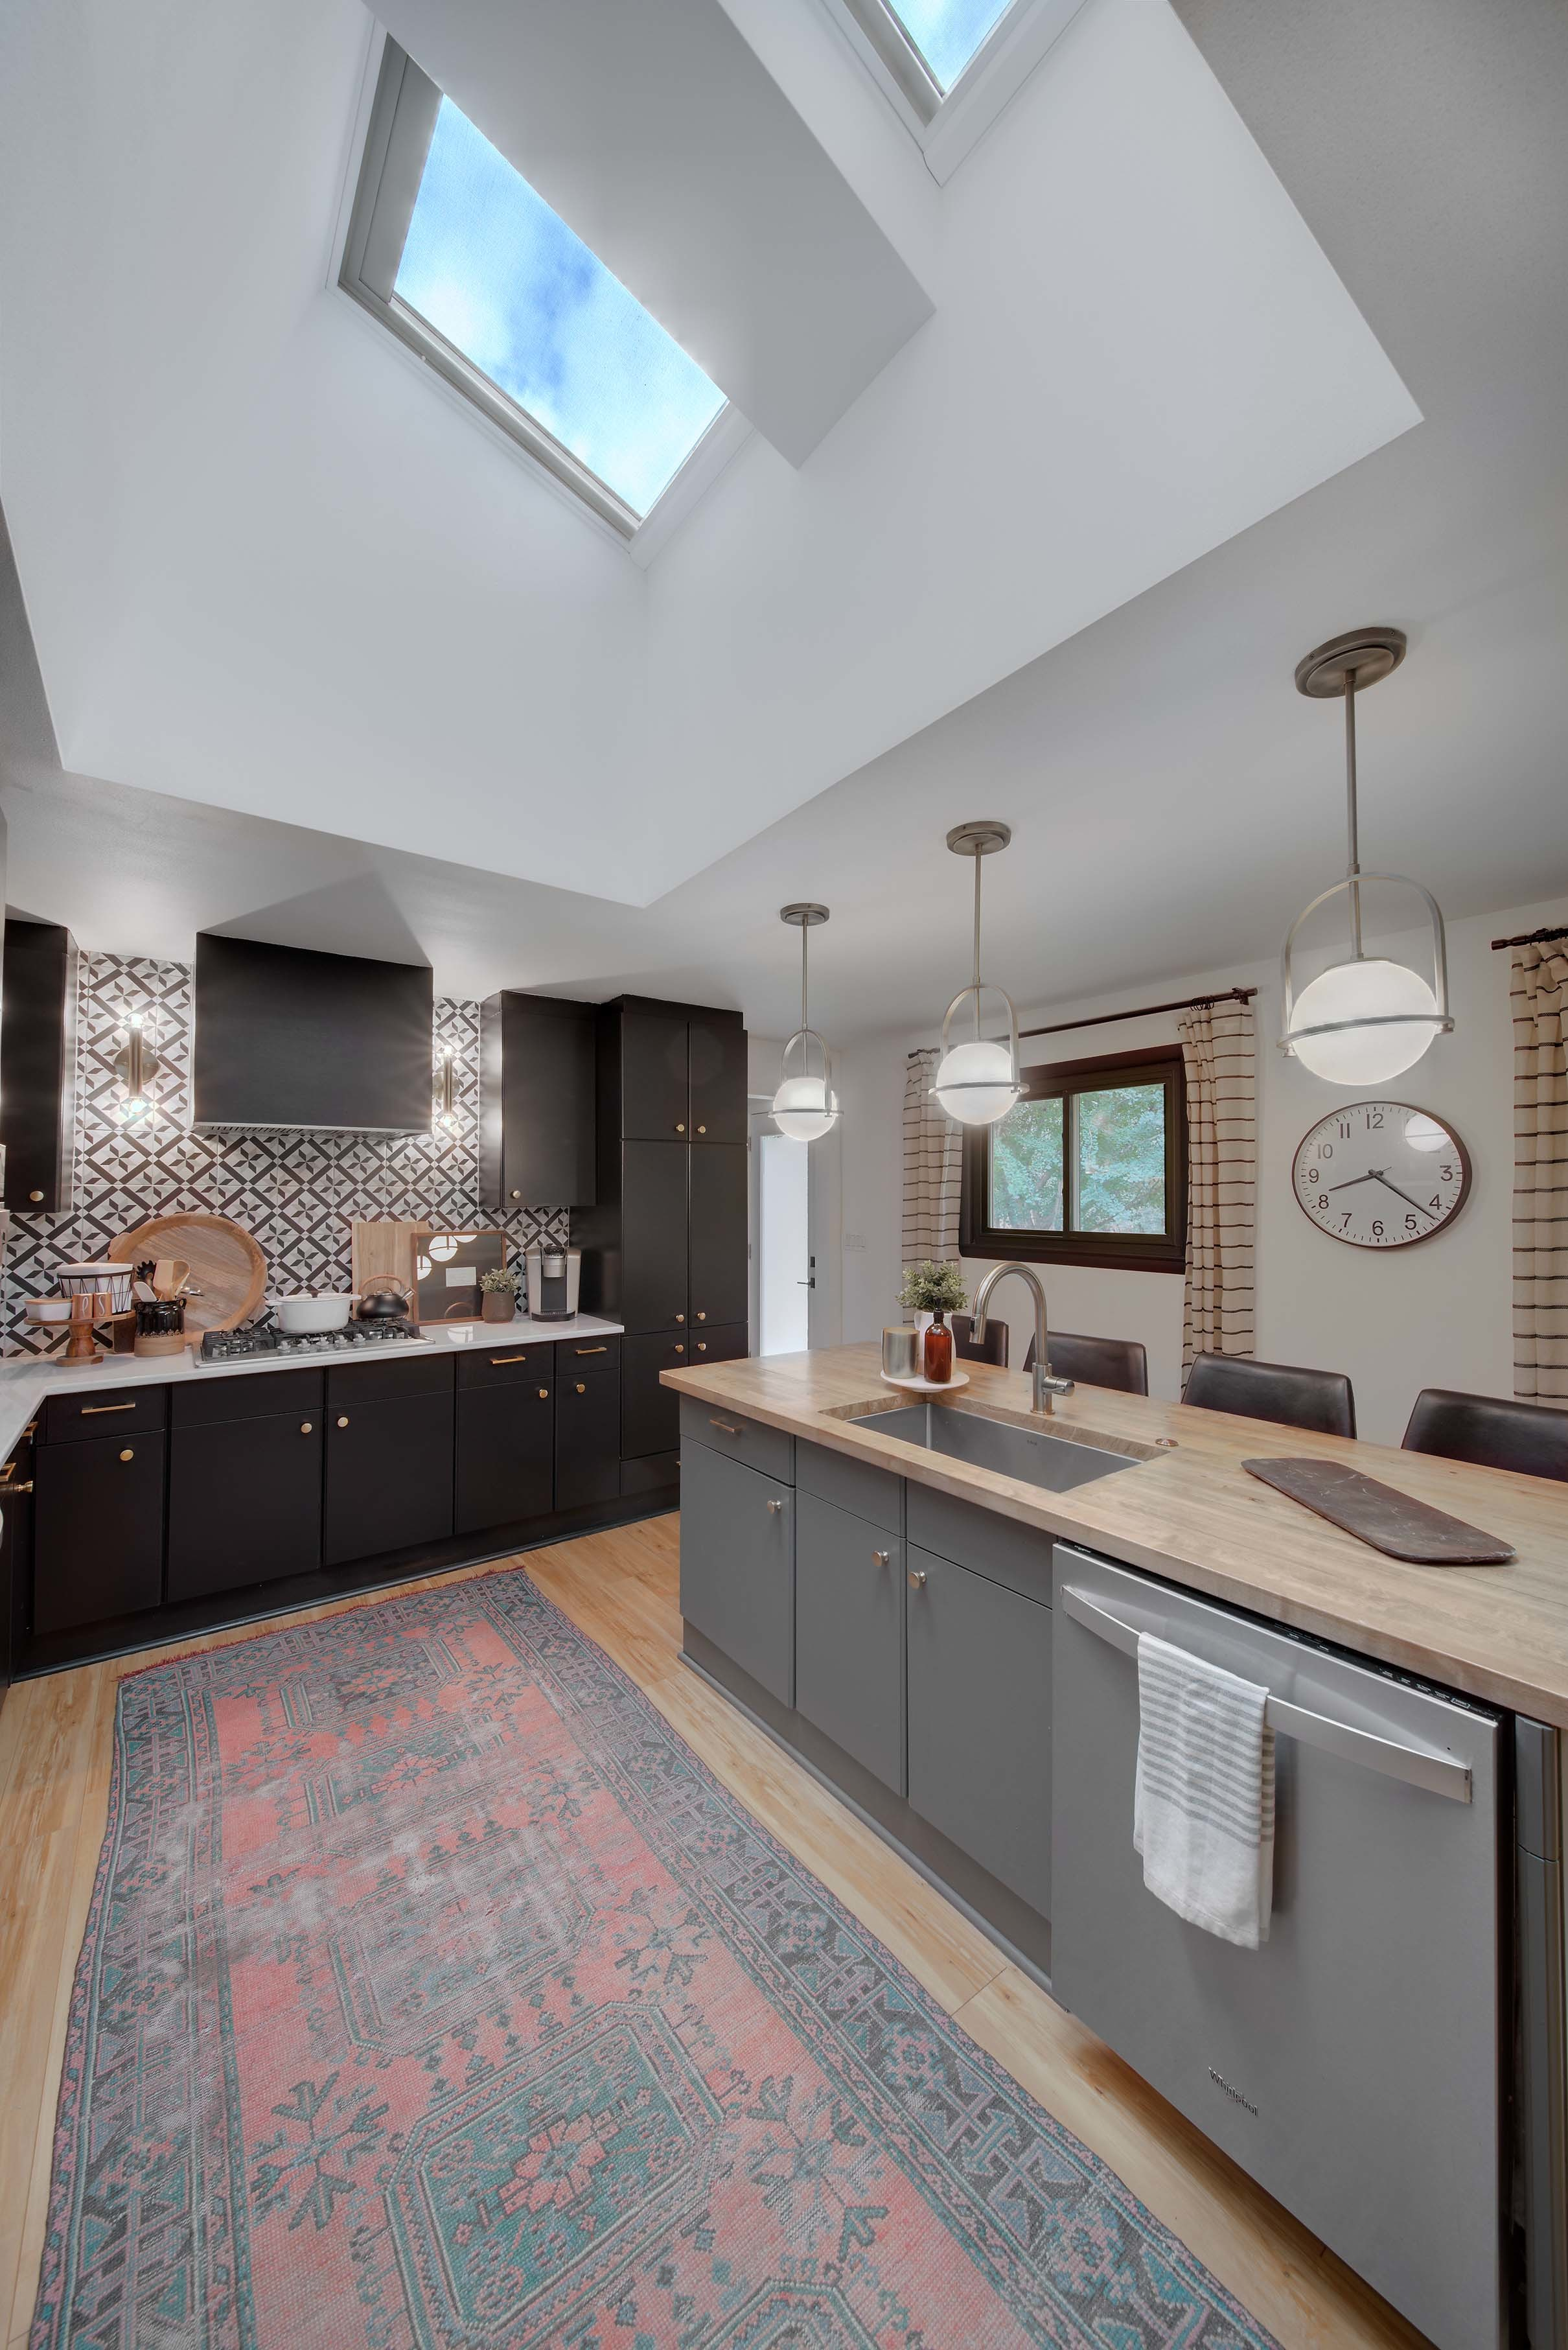 Skylights flat ceiling kitchen black cabinets